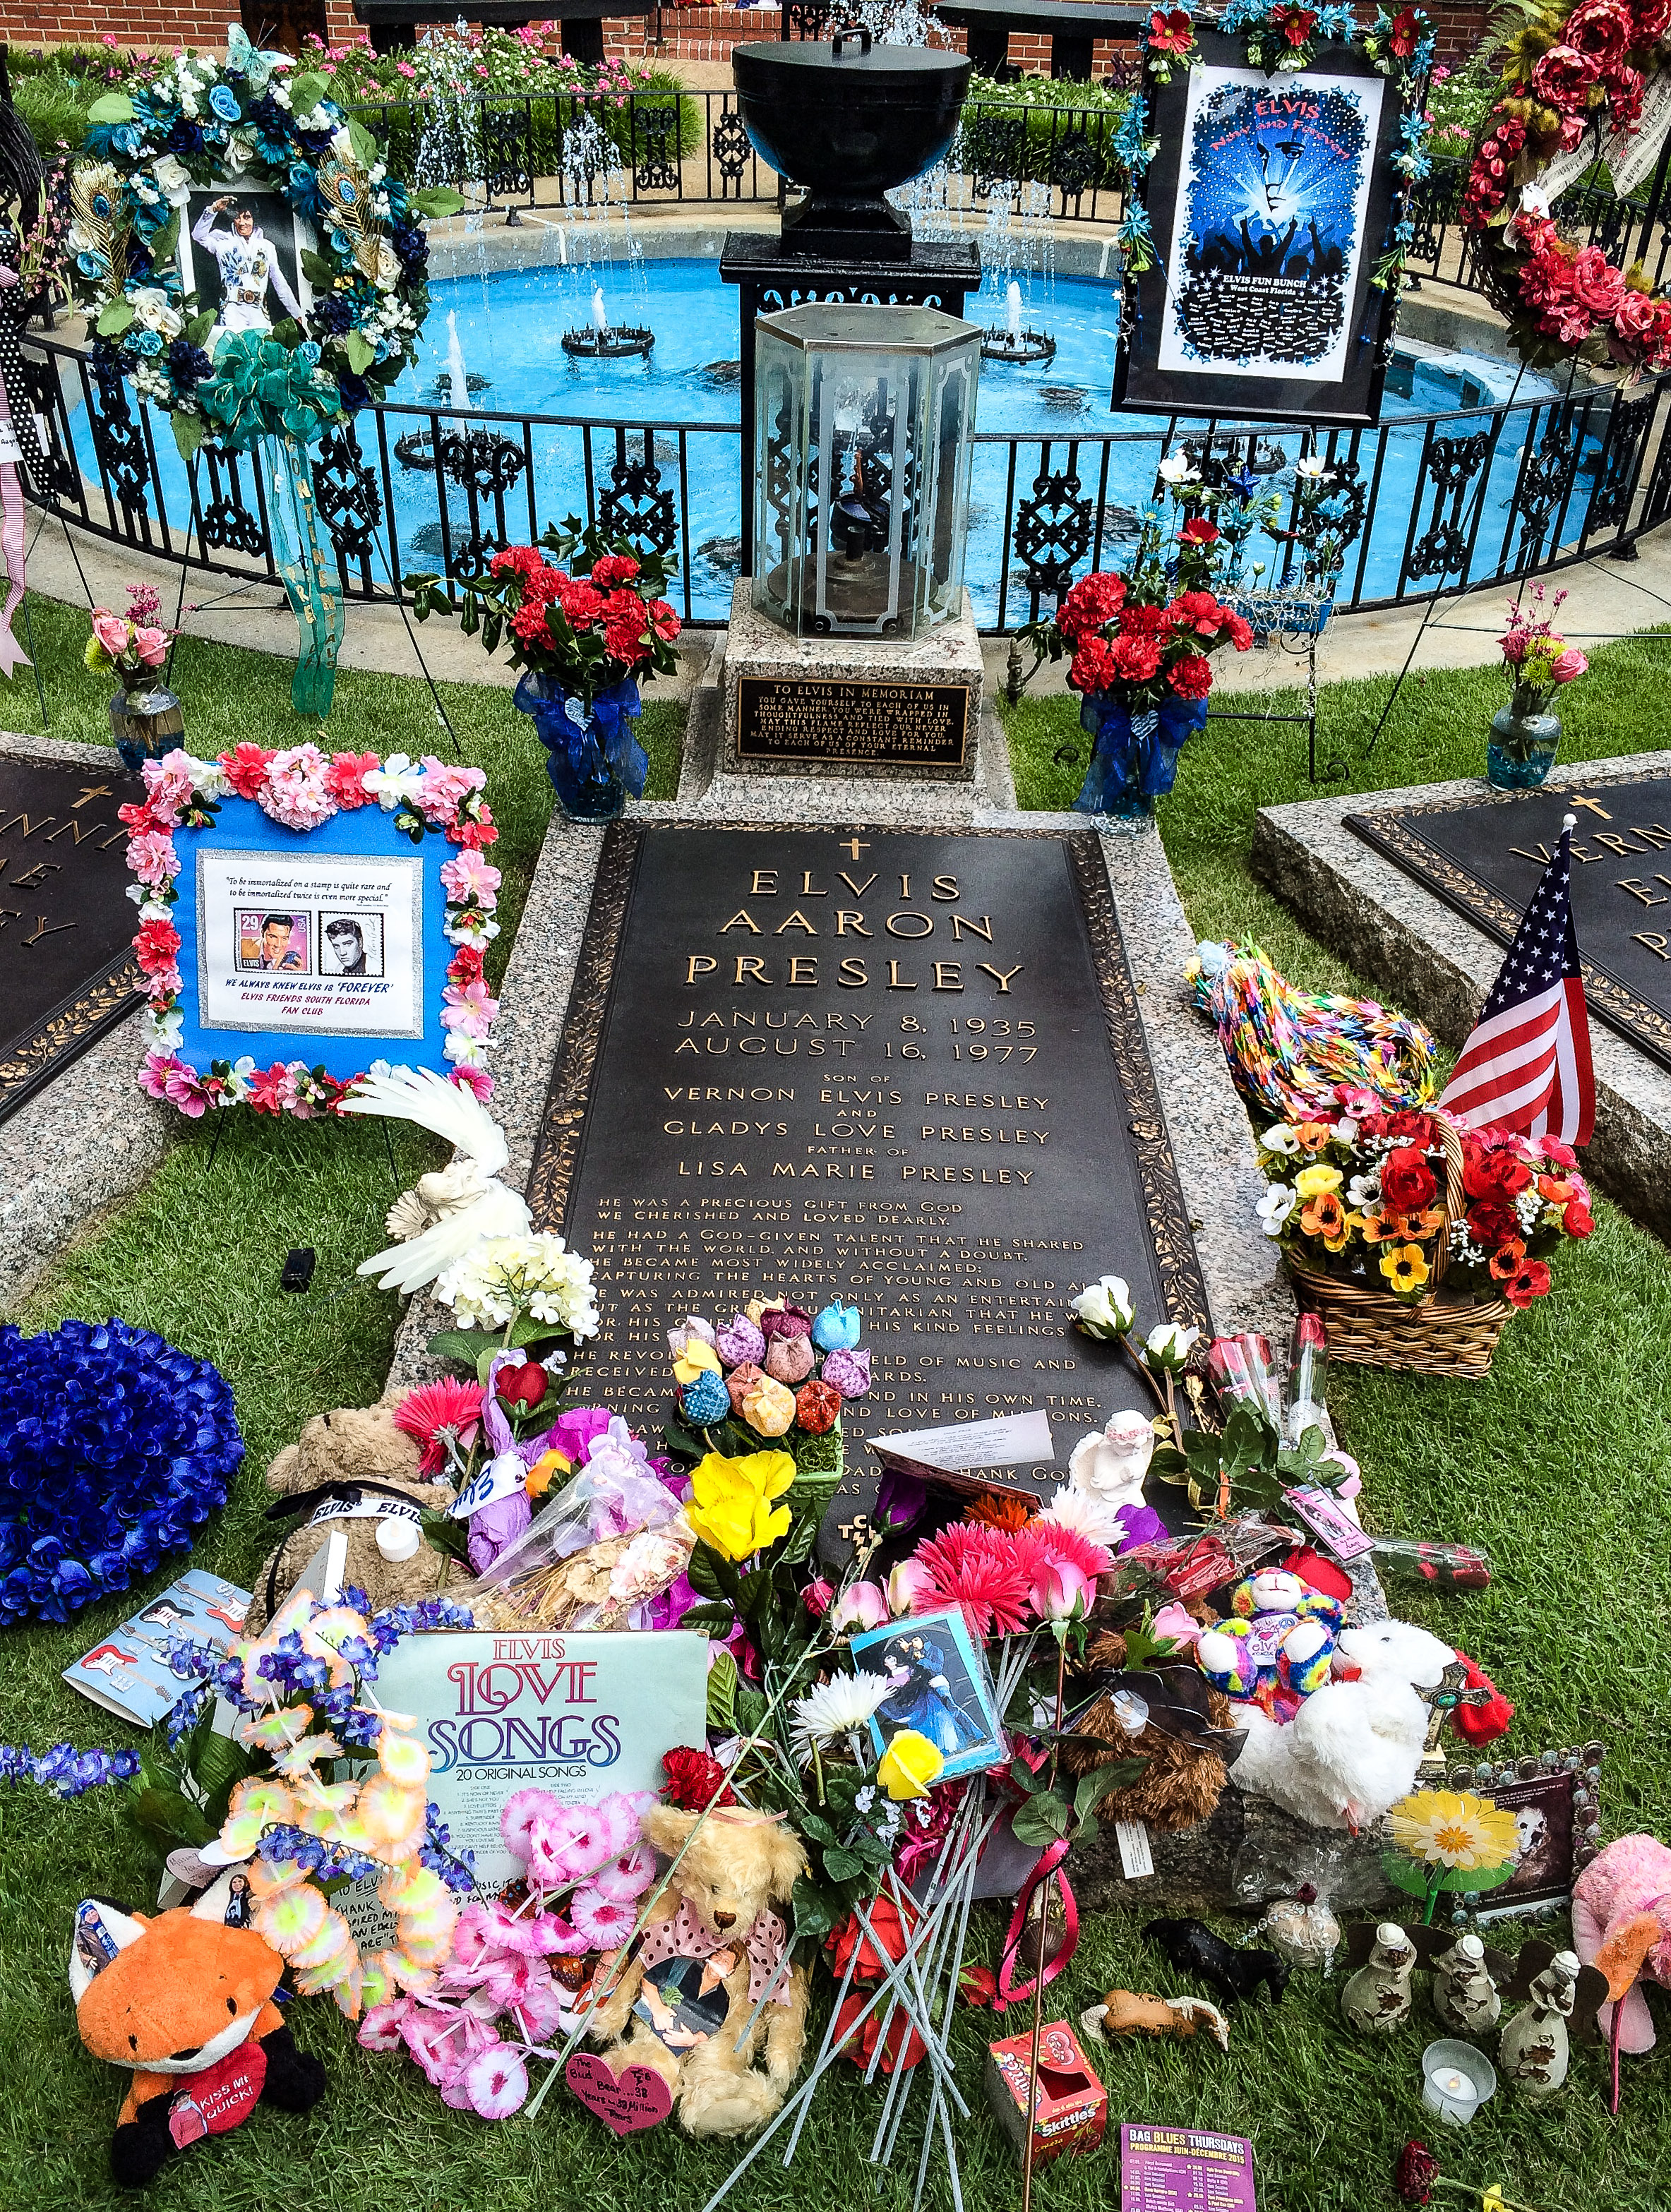 Elvis's grave. It's Elvis week, commemorating the anniversary of his death, so tons of fans send or leave things everywhere.